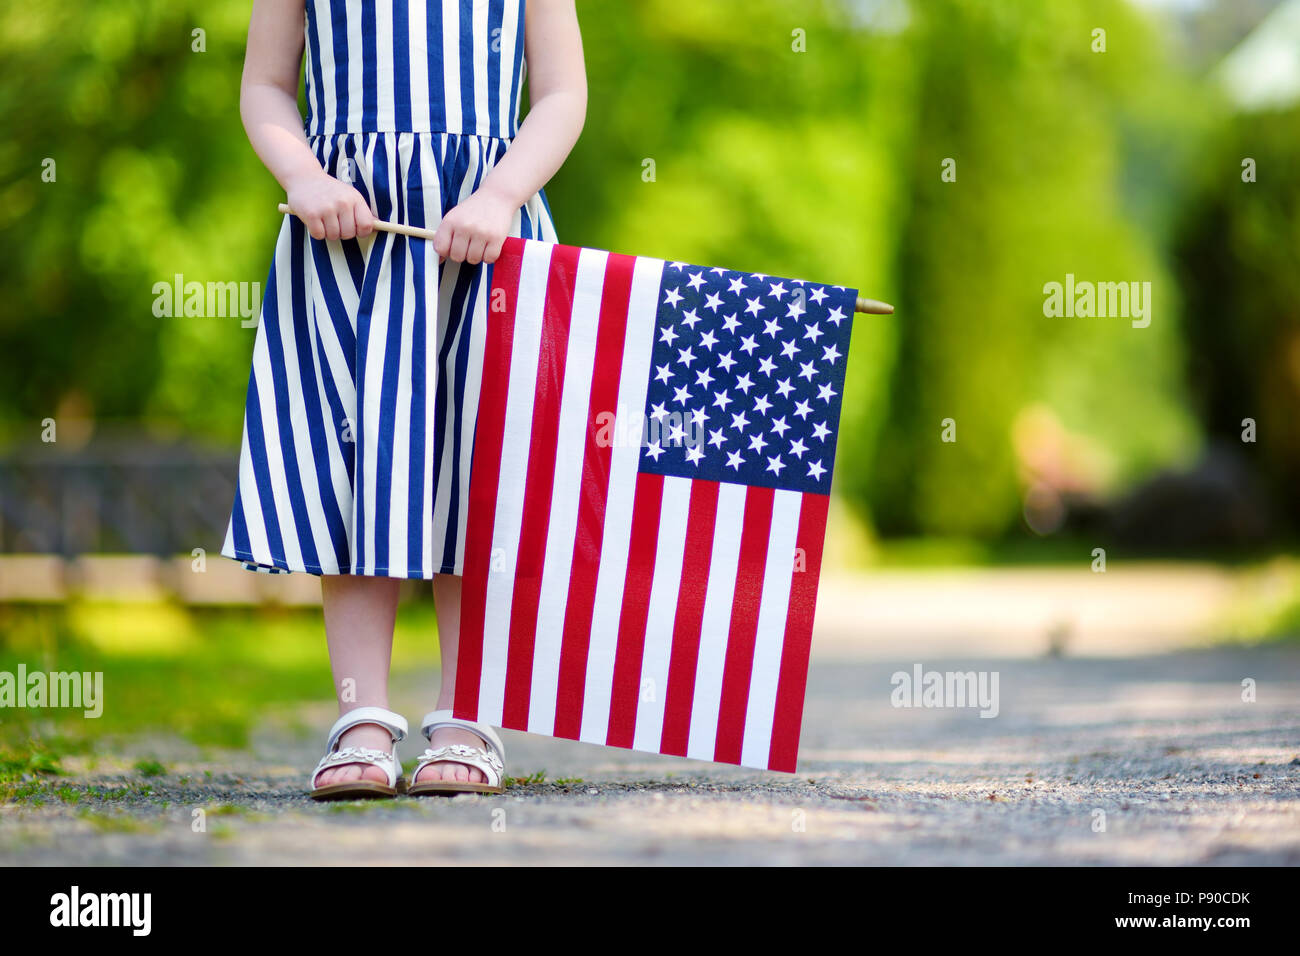 Adorable Little Girl Holding American Flag Outdoors On Beautiful